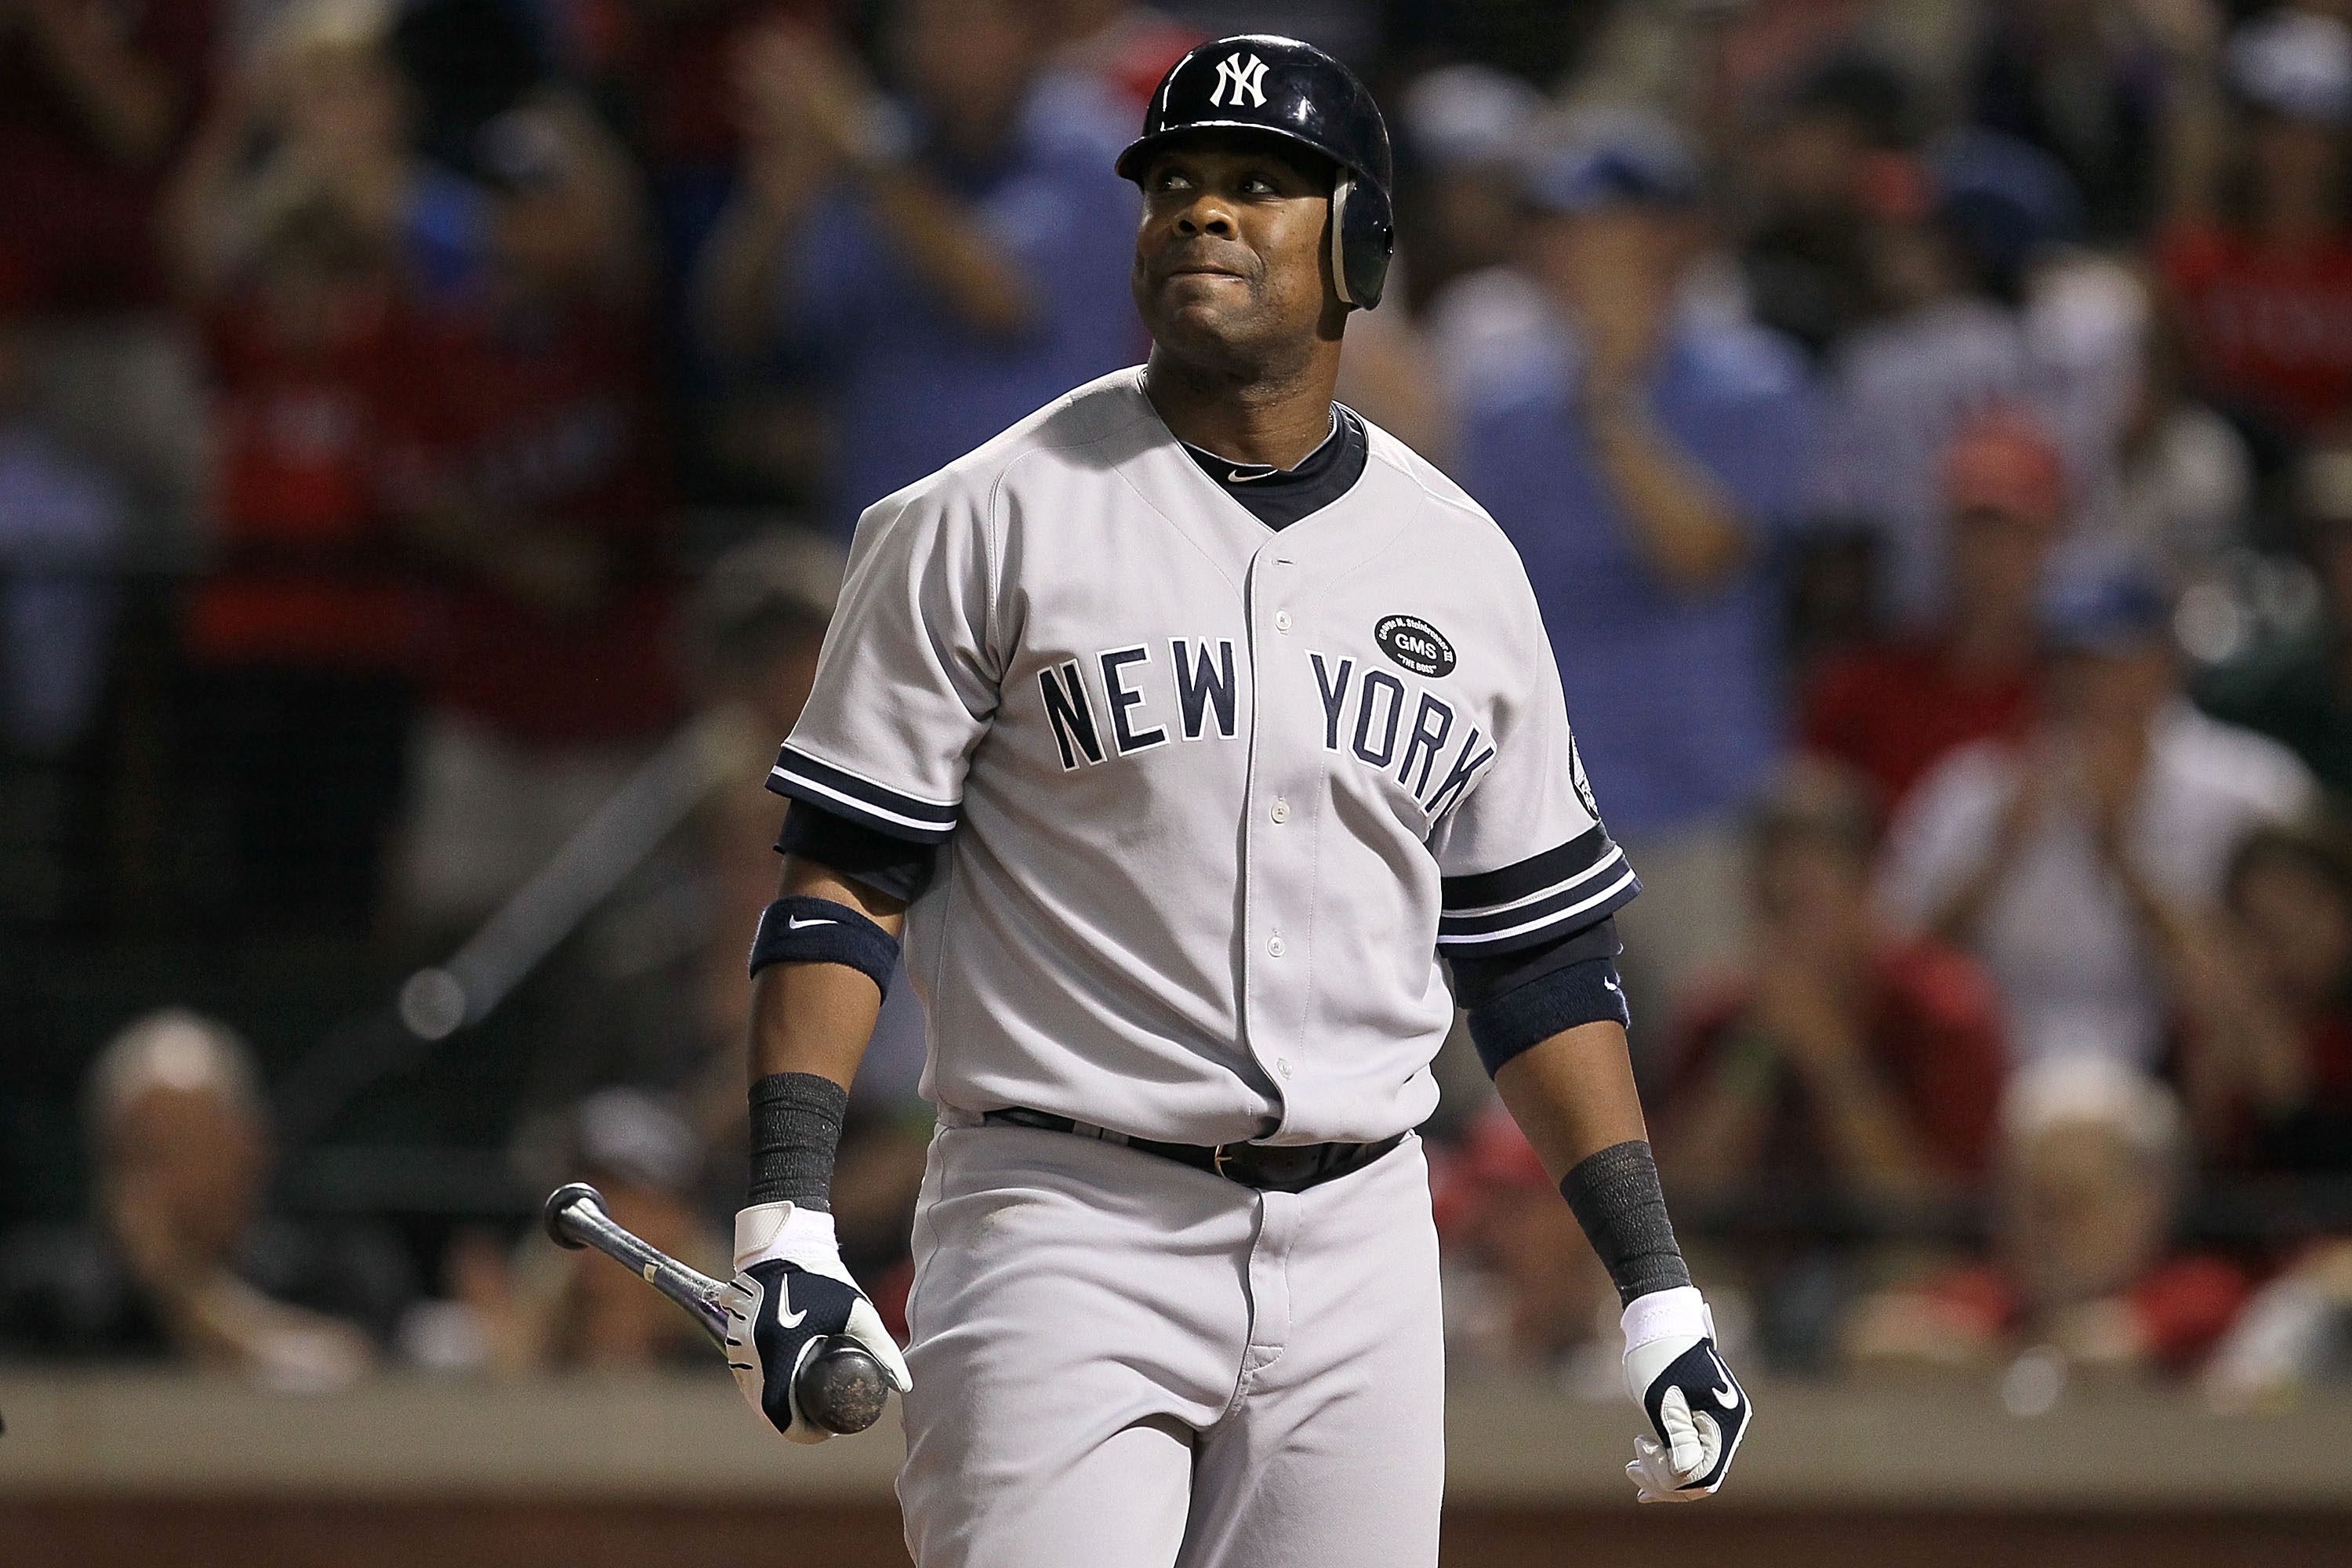 ARLINGTON, TX - OCTOBER 22:  Marcus Thames #38 of the New York Yankees reacts after striking out against the Texas Rangers in Game Six of the ALCS during the 2010 MLB Playoffs at Rangers Ballpark in Arlington on October 22, 2010 in Arlington, Texas.  (Pho